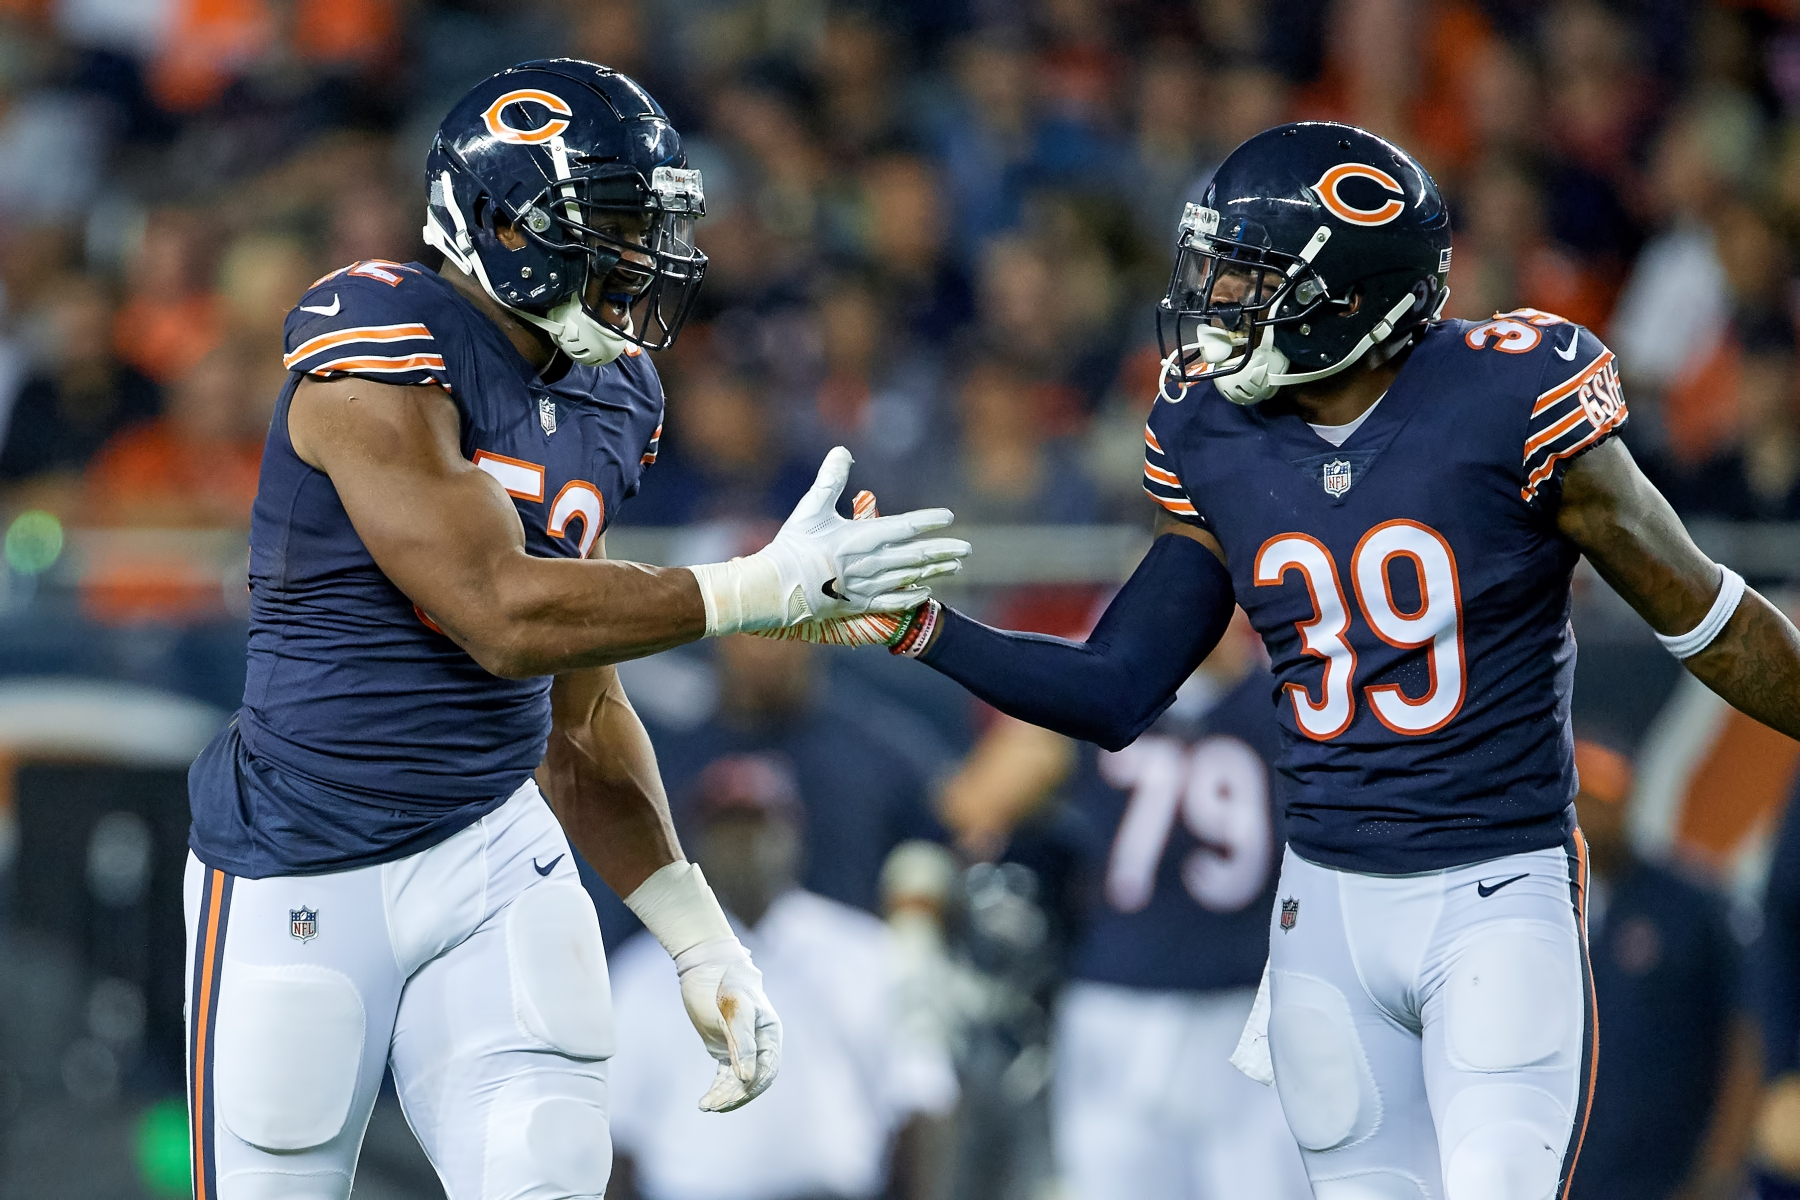 CHICAGO, IL - SEPTEMBER 17: Chicago Bears linebacker Khalil Mack (52) celebrates with Chicago Bears defensive back Eddie Jackson (39) after a play in game action during an NFL game between the Chicago Bears and the Seattle Seahawks on September 17, 2018 at Soldier Field in Chicago, Illinois. (Photo by Robin Alam/Icon Sportswire via Getty Images)